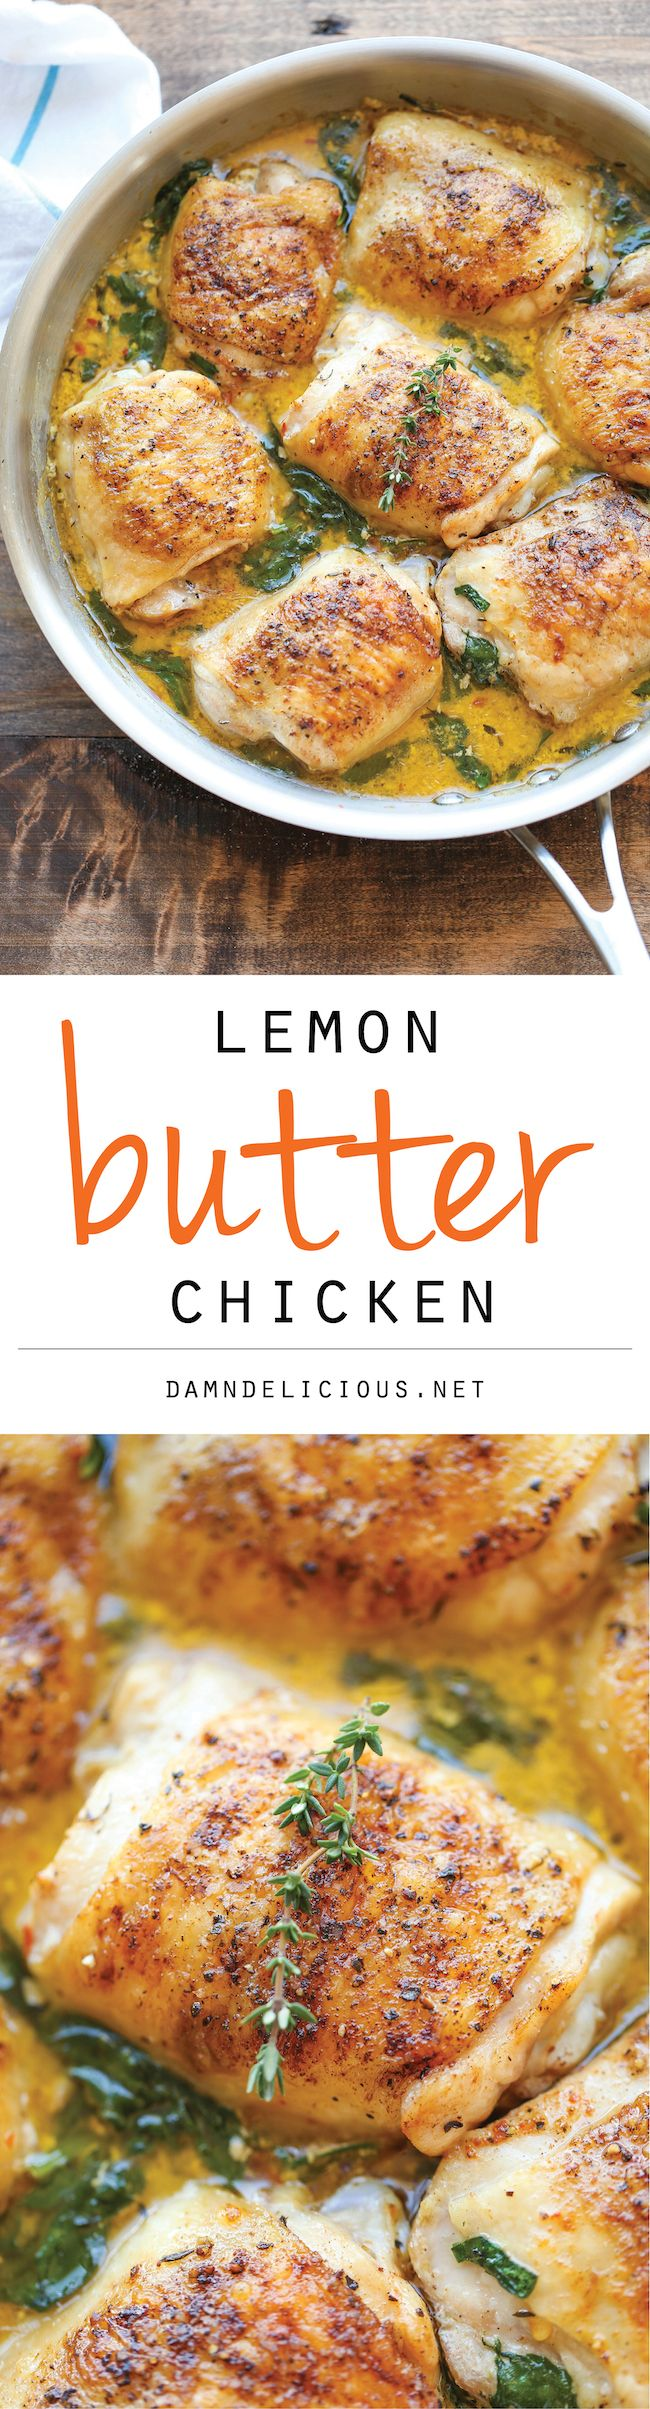 Lemon Butter Chicken - I will be making this for me and my new roomie soon!